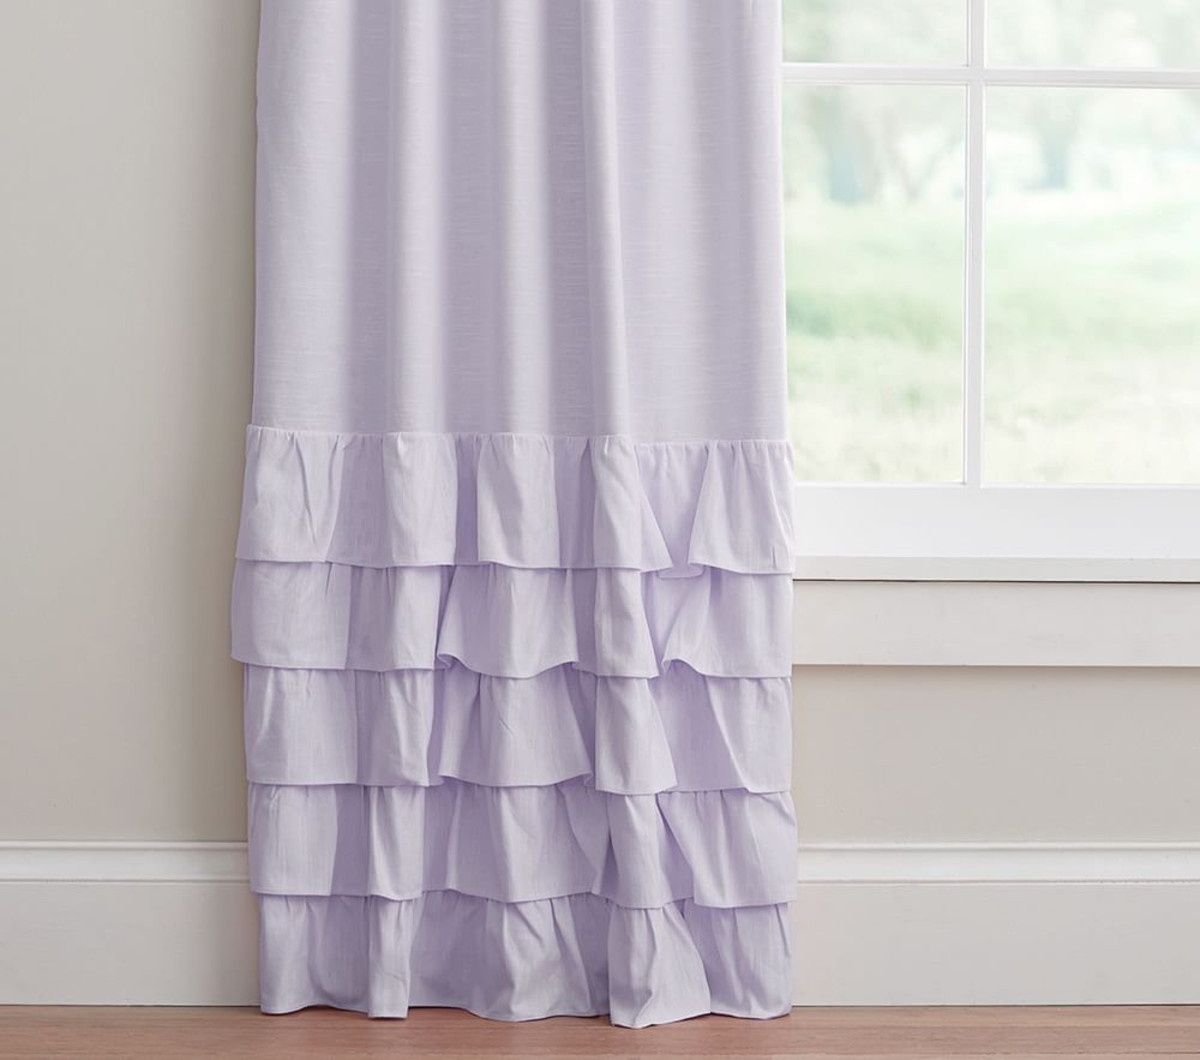 Ruffle Window Curtain | Blackout Curtains Childrens | Ruffle Blackout Curtains